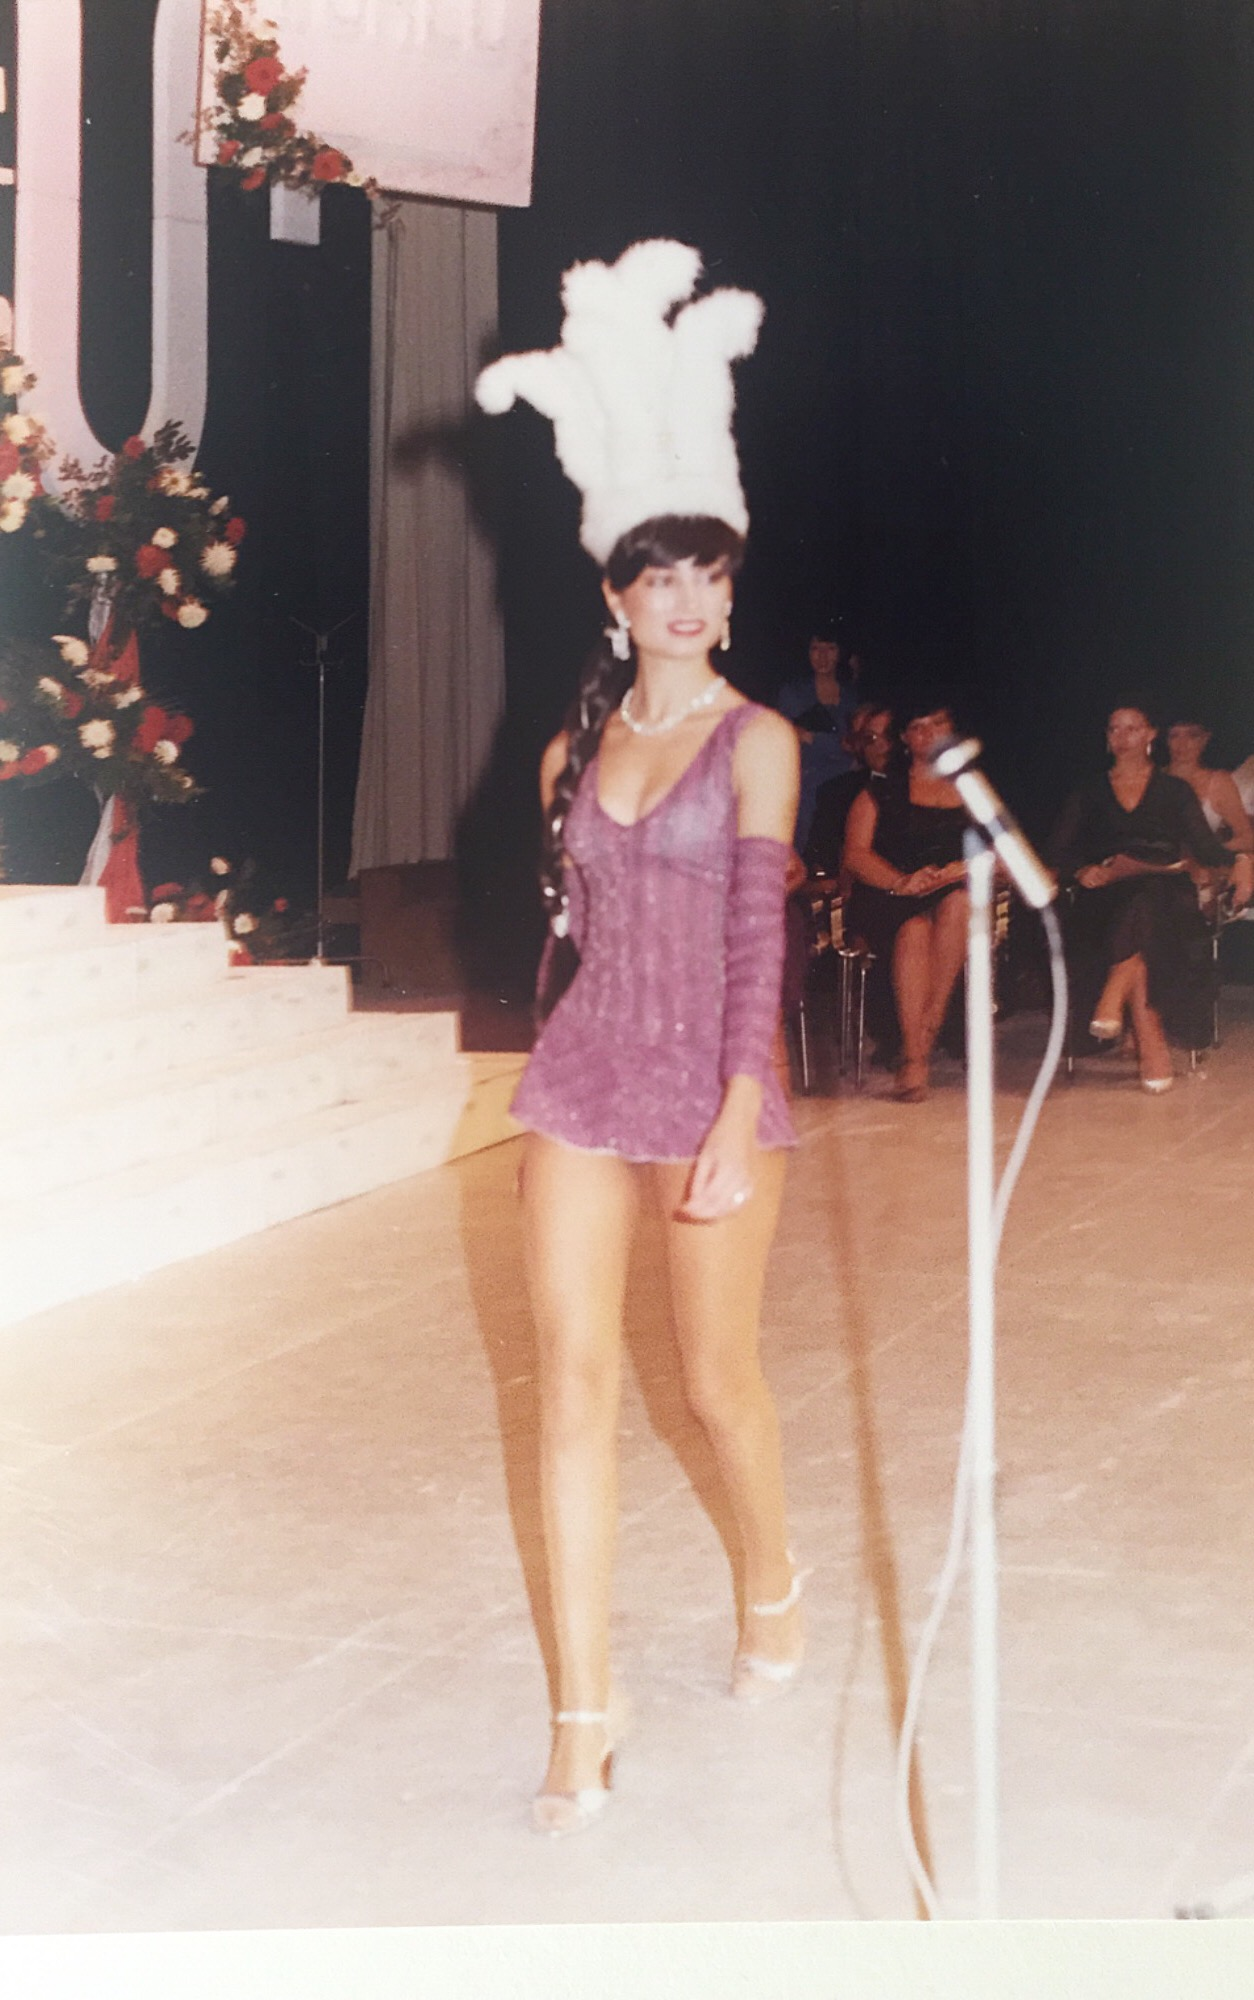 36. Miss Fgura in Miss Malta Contest 1980